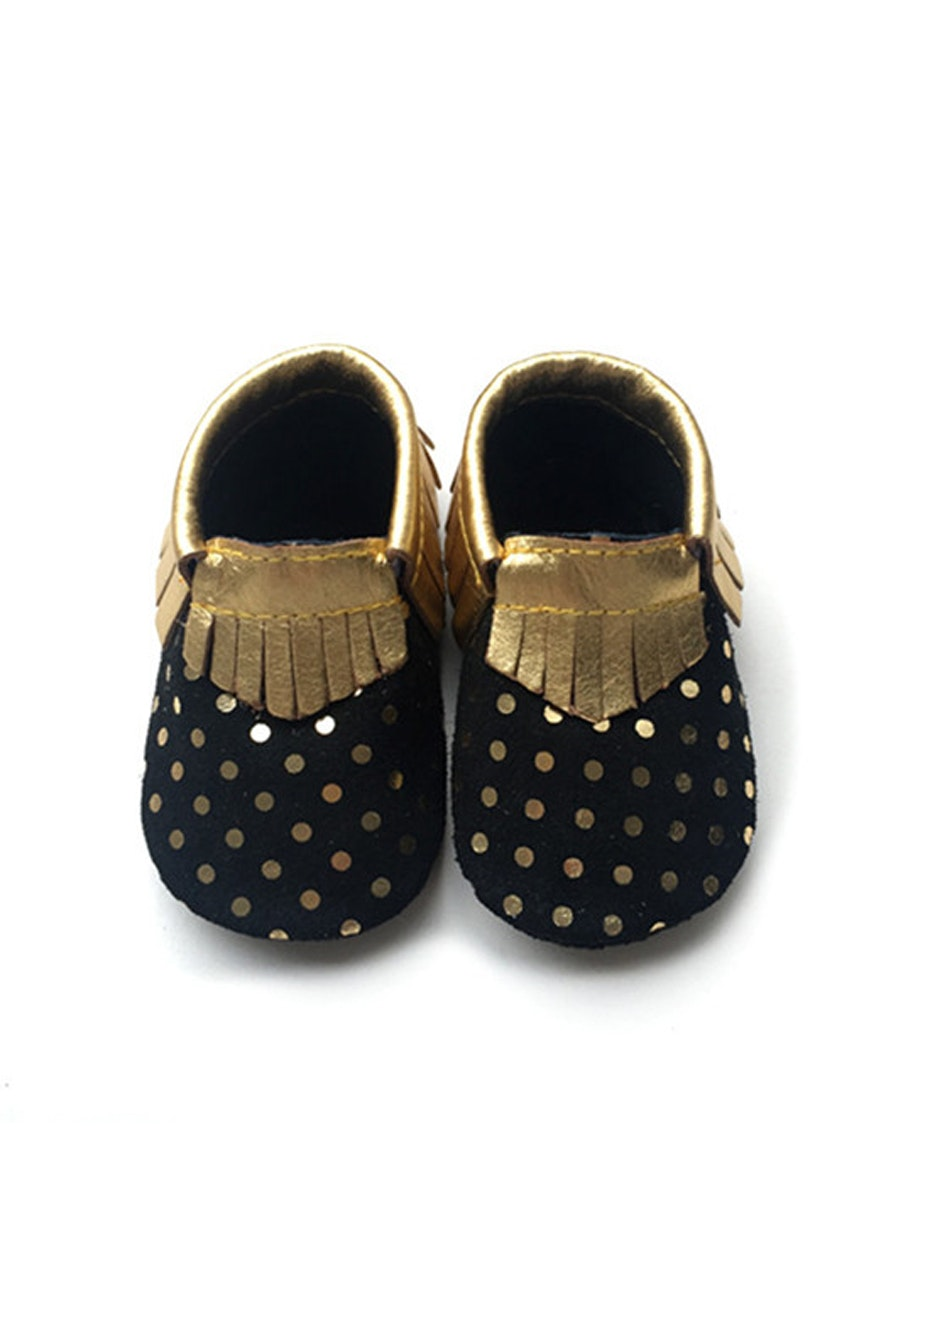 Baby  Leather Shoes - Black/Gold Dot